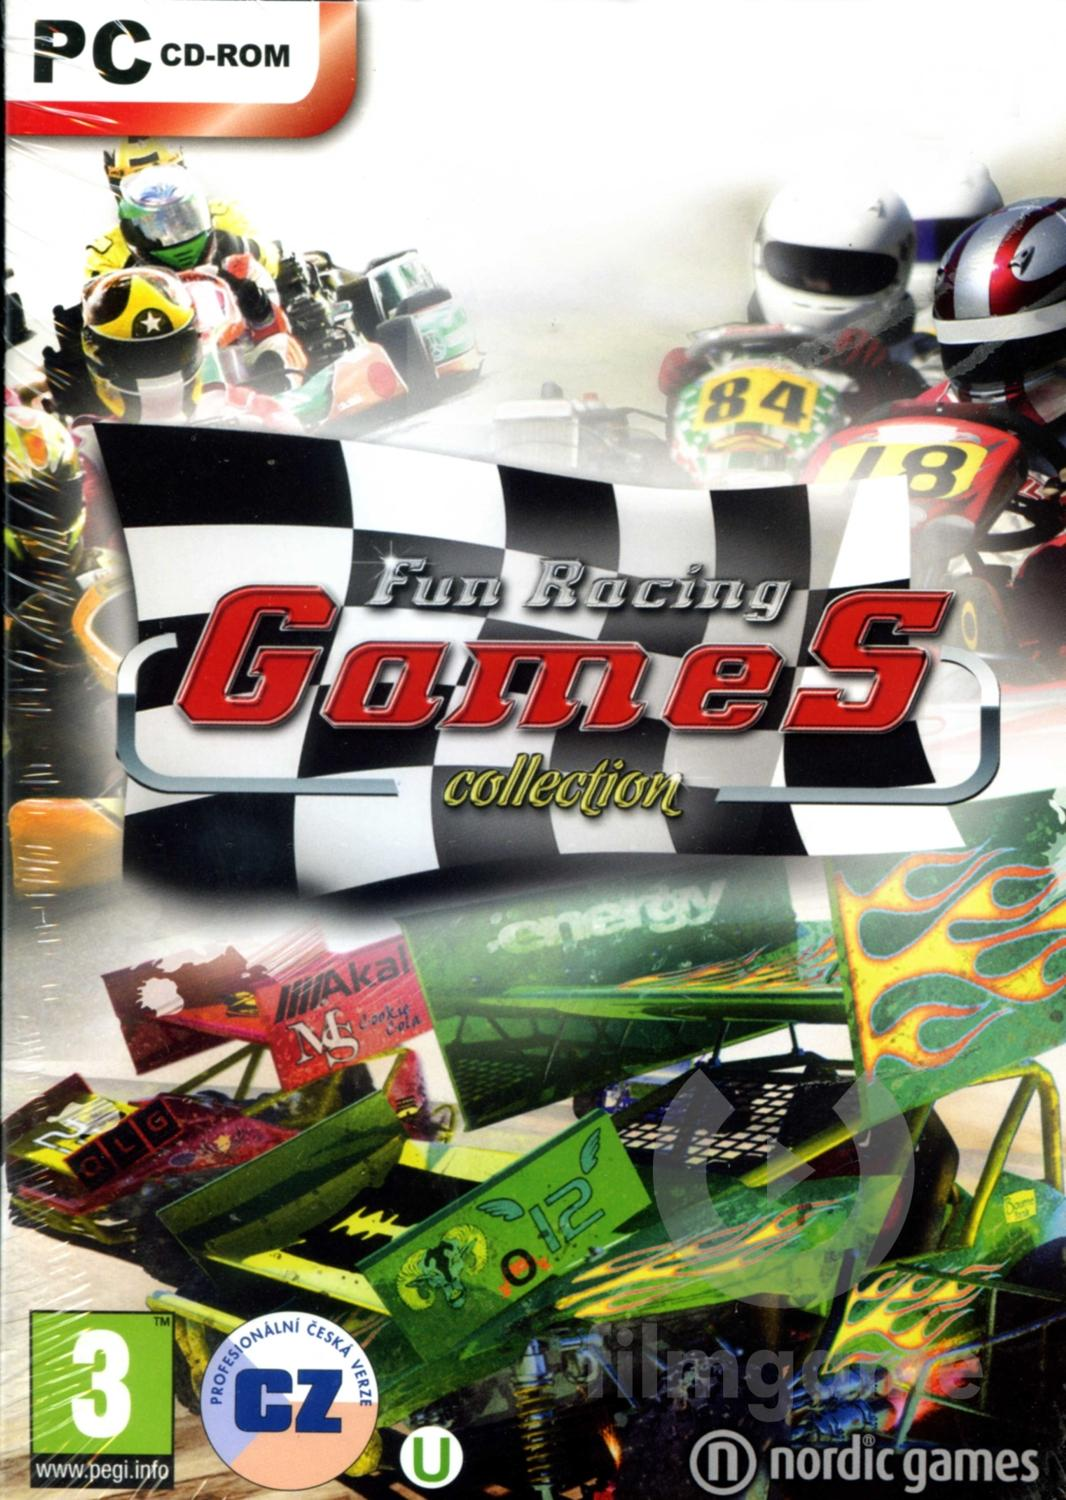 FUN RACING GAMES COLLECTION - PC